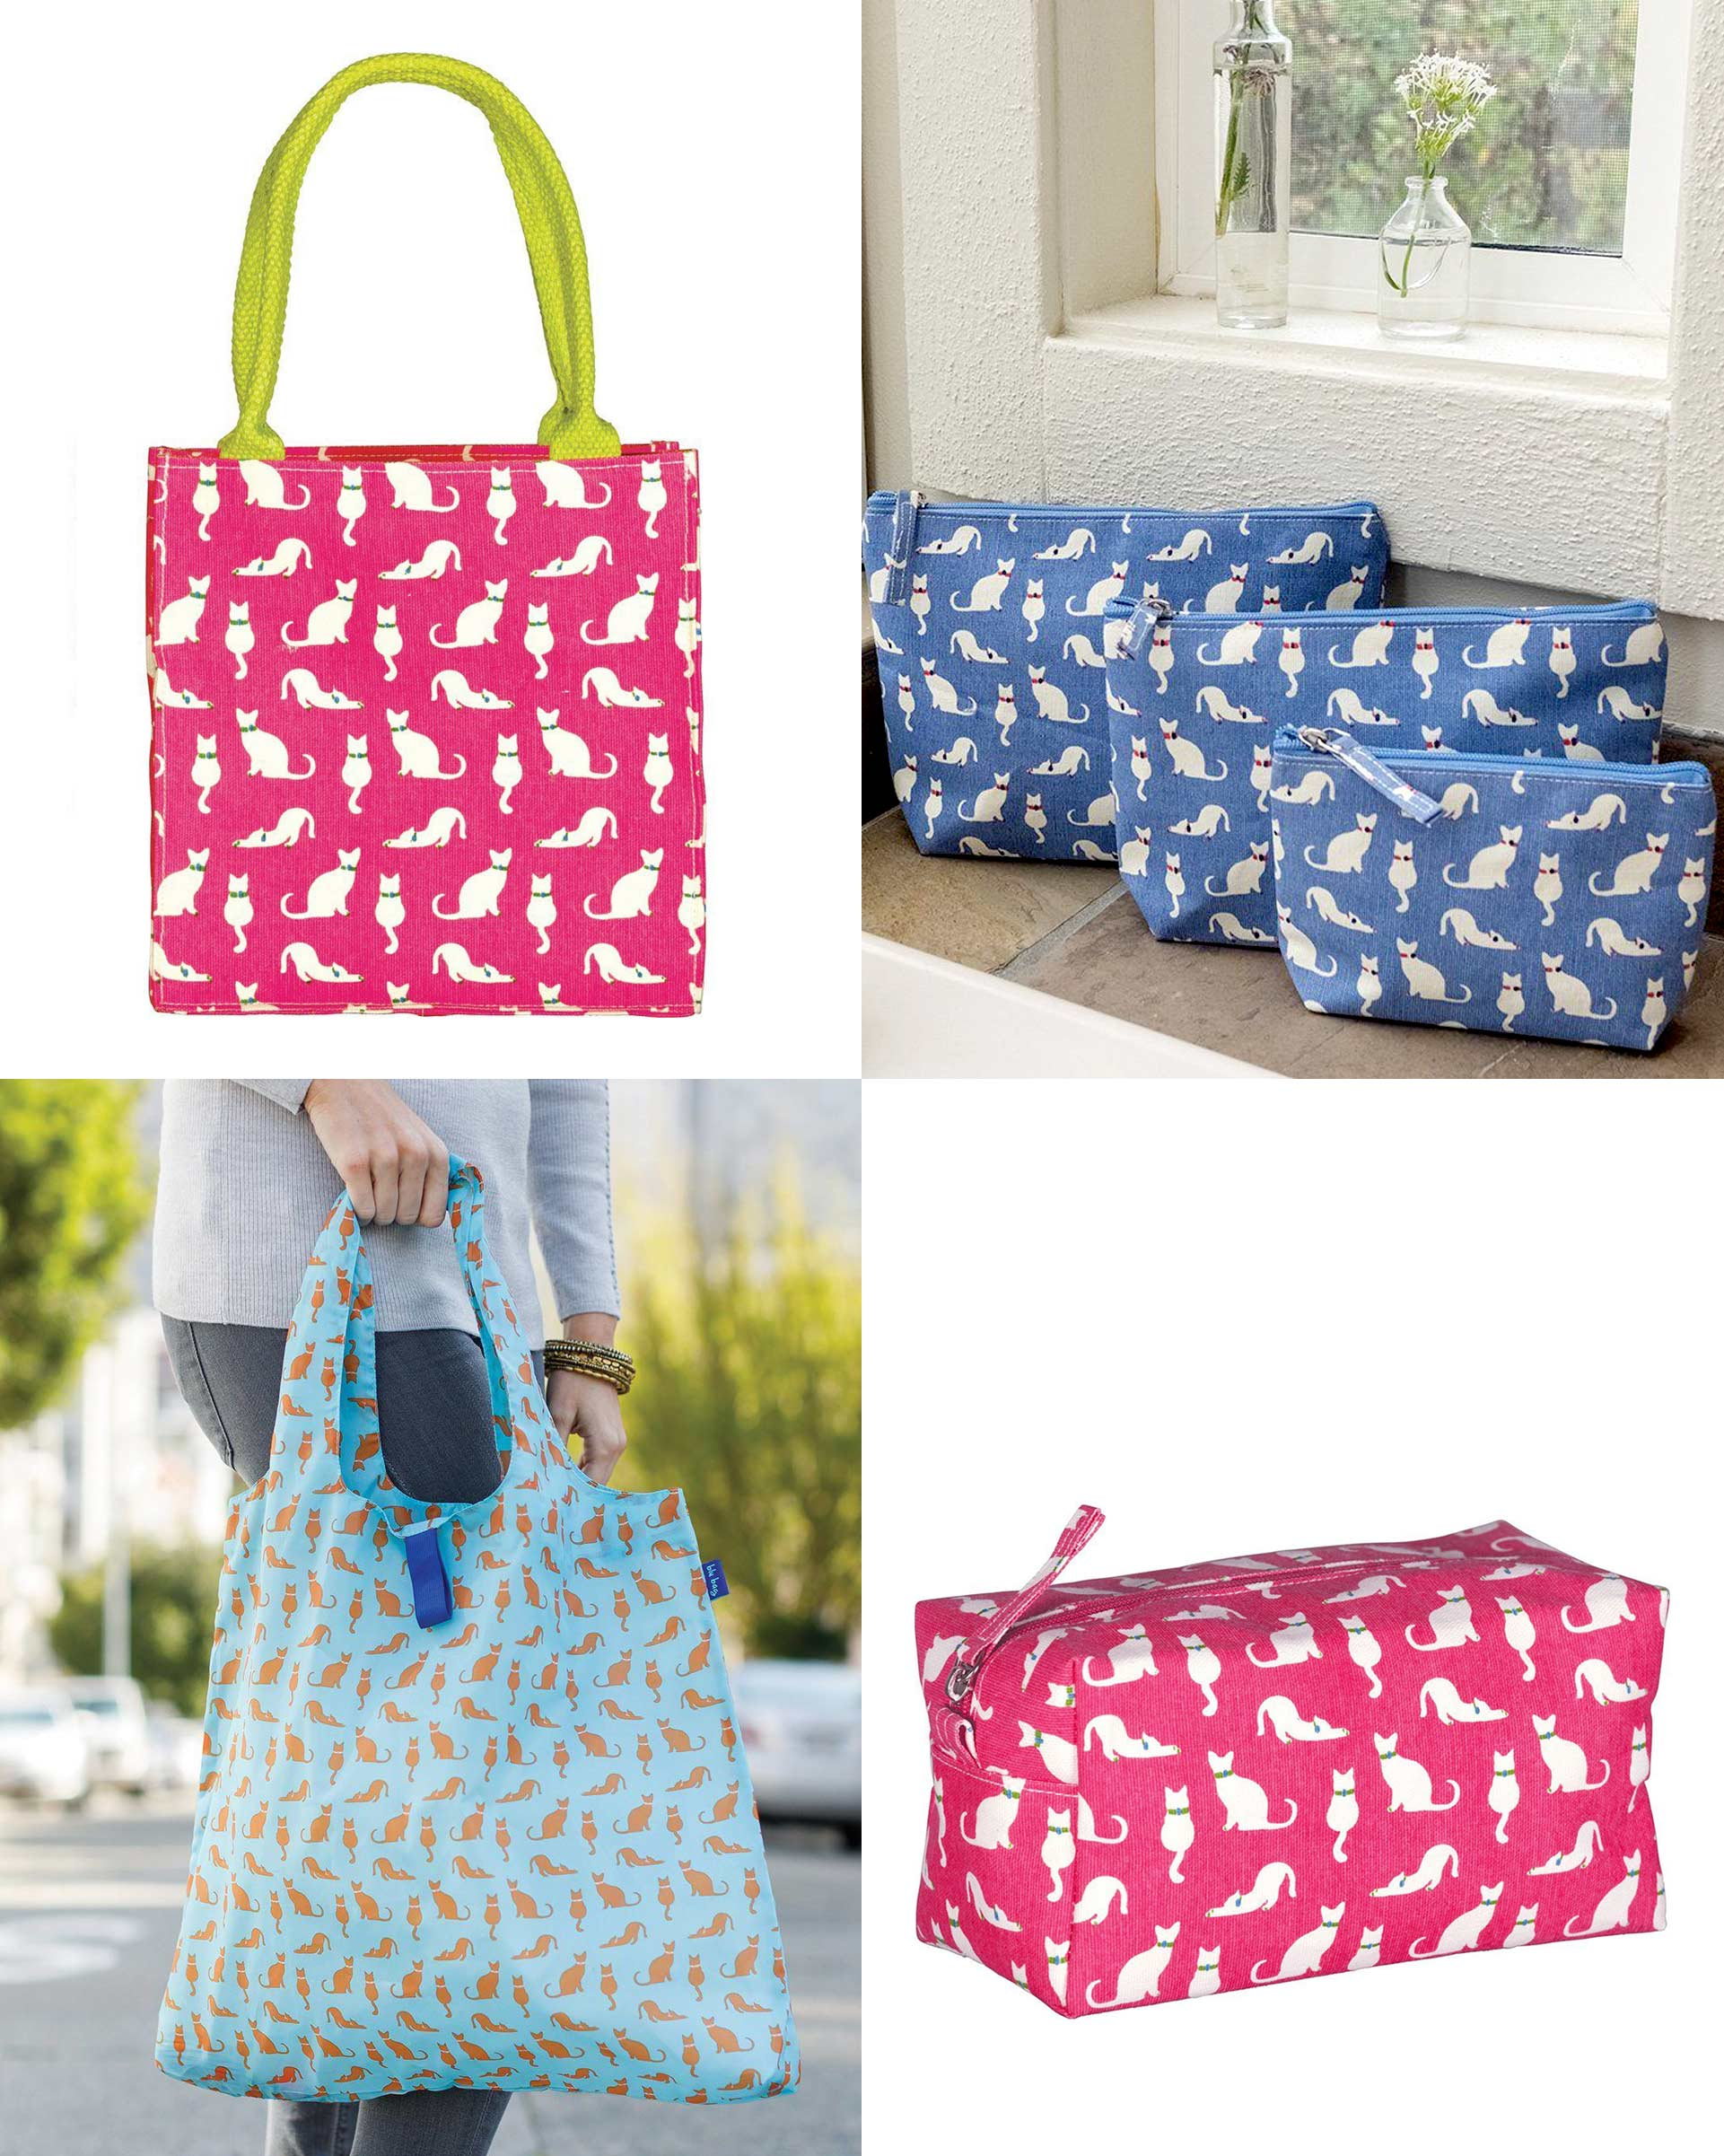 pink and blue tote bags with cat print